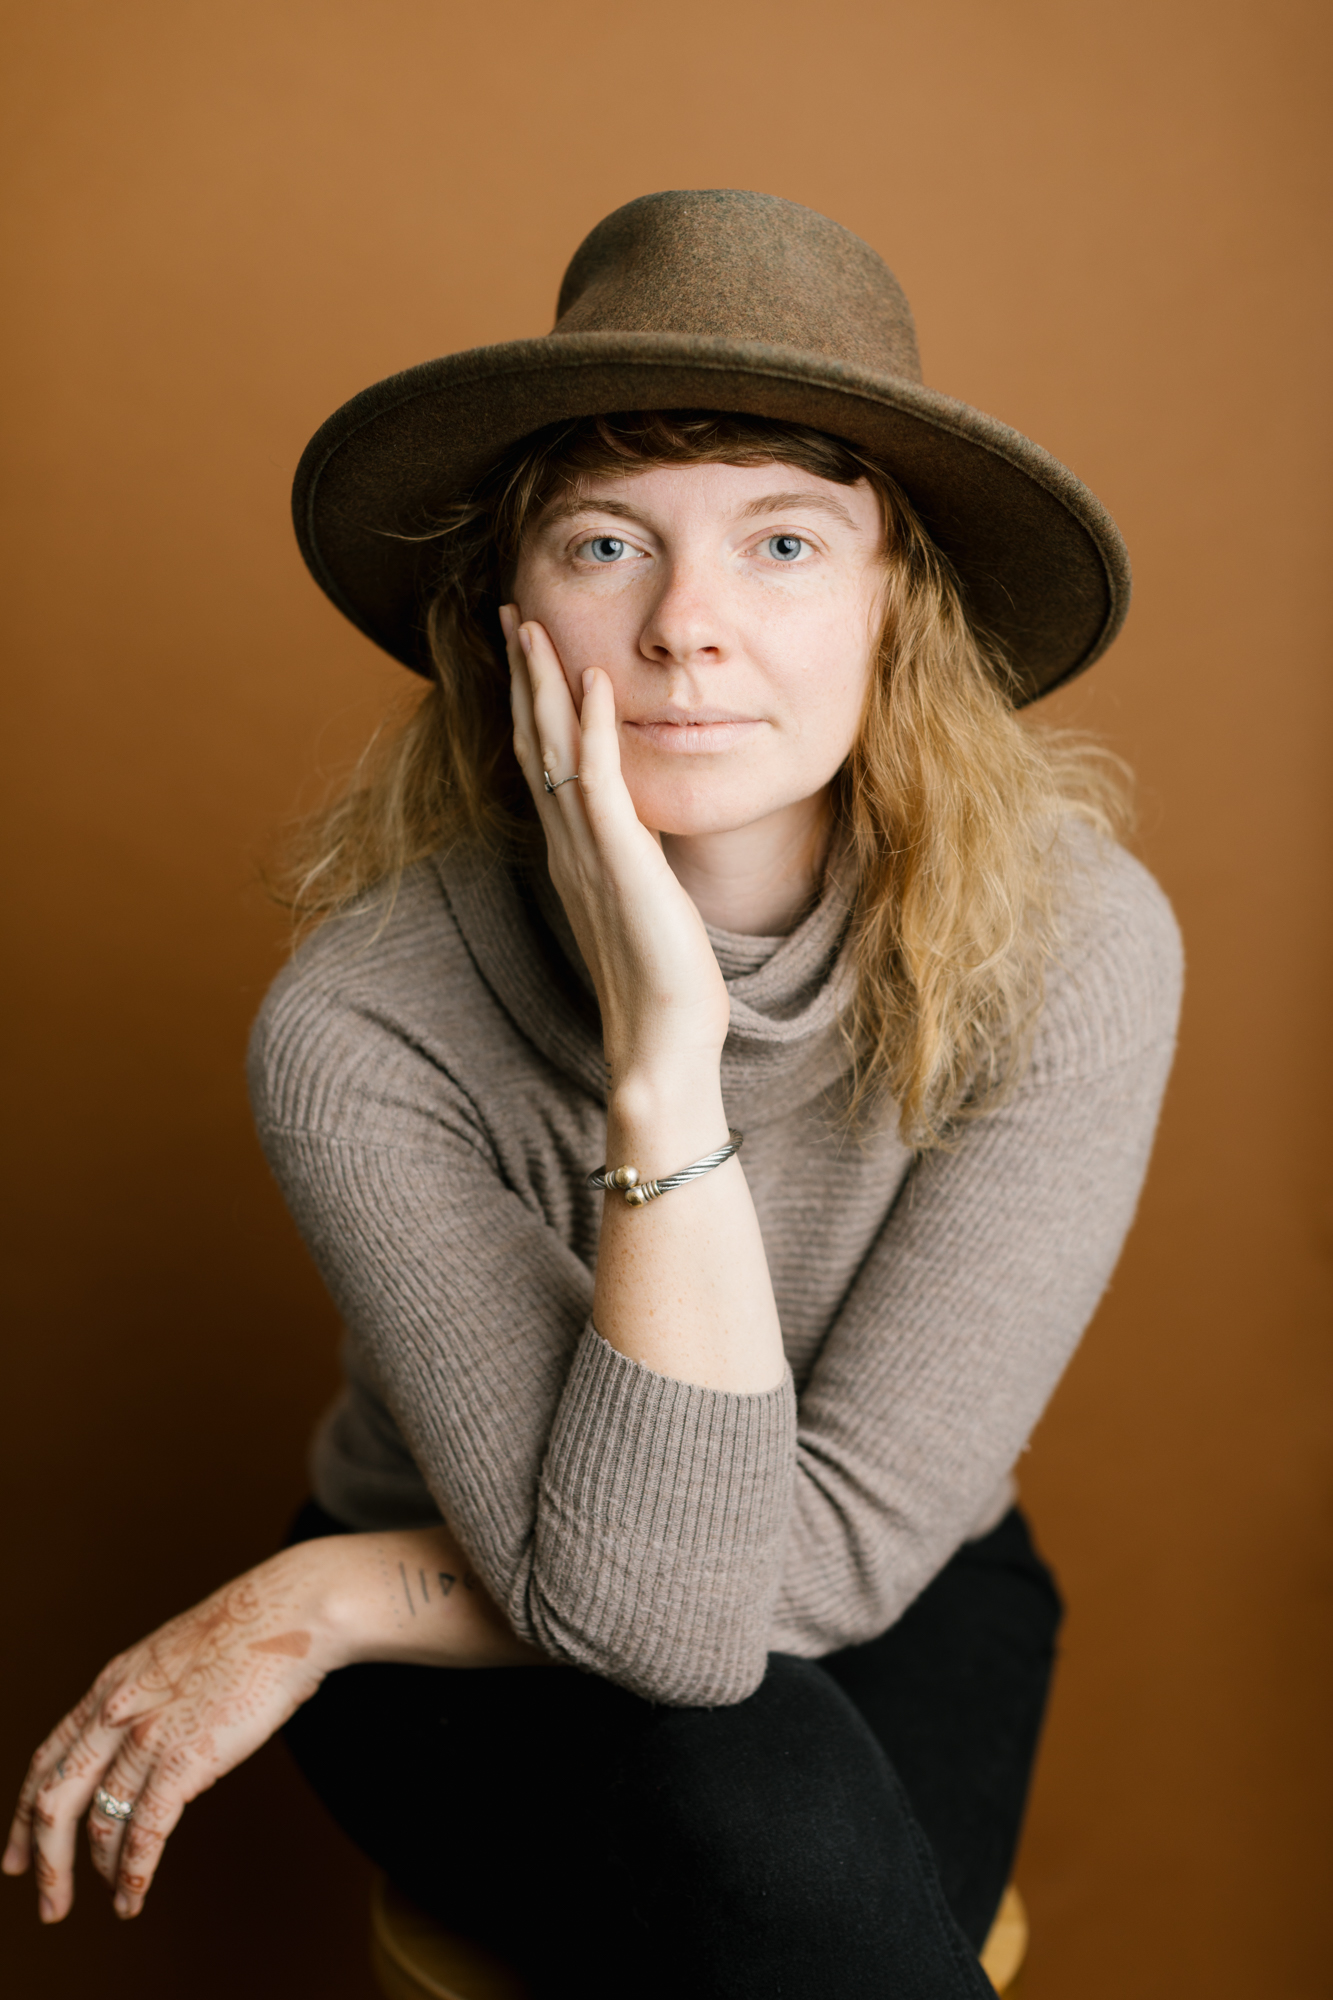 A portrait of a woman in a photography and videography studio in Bloomington, Indiana.